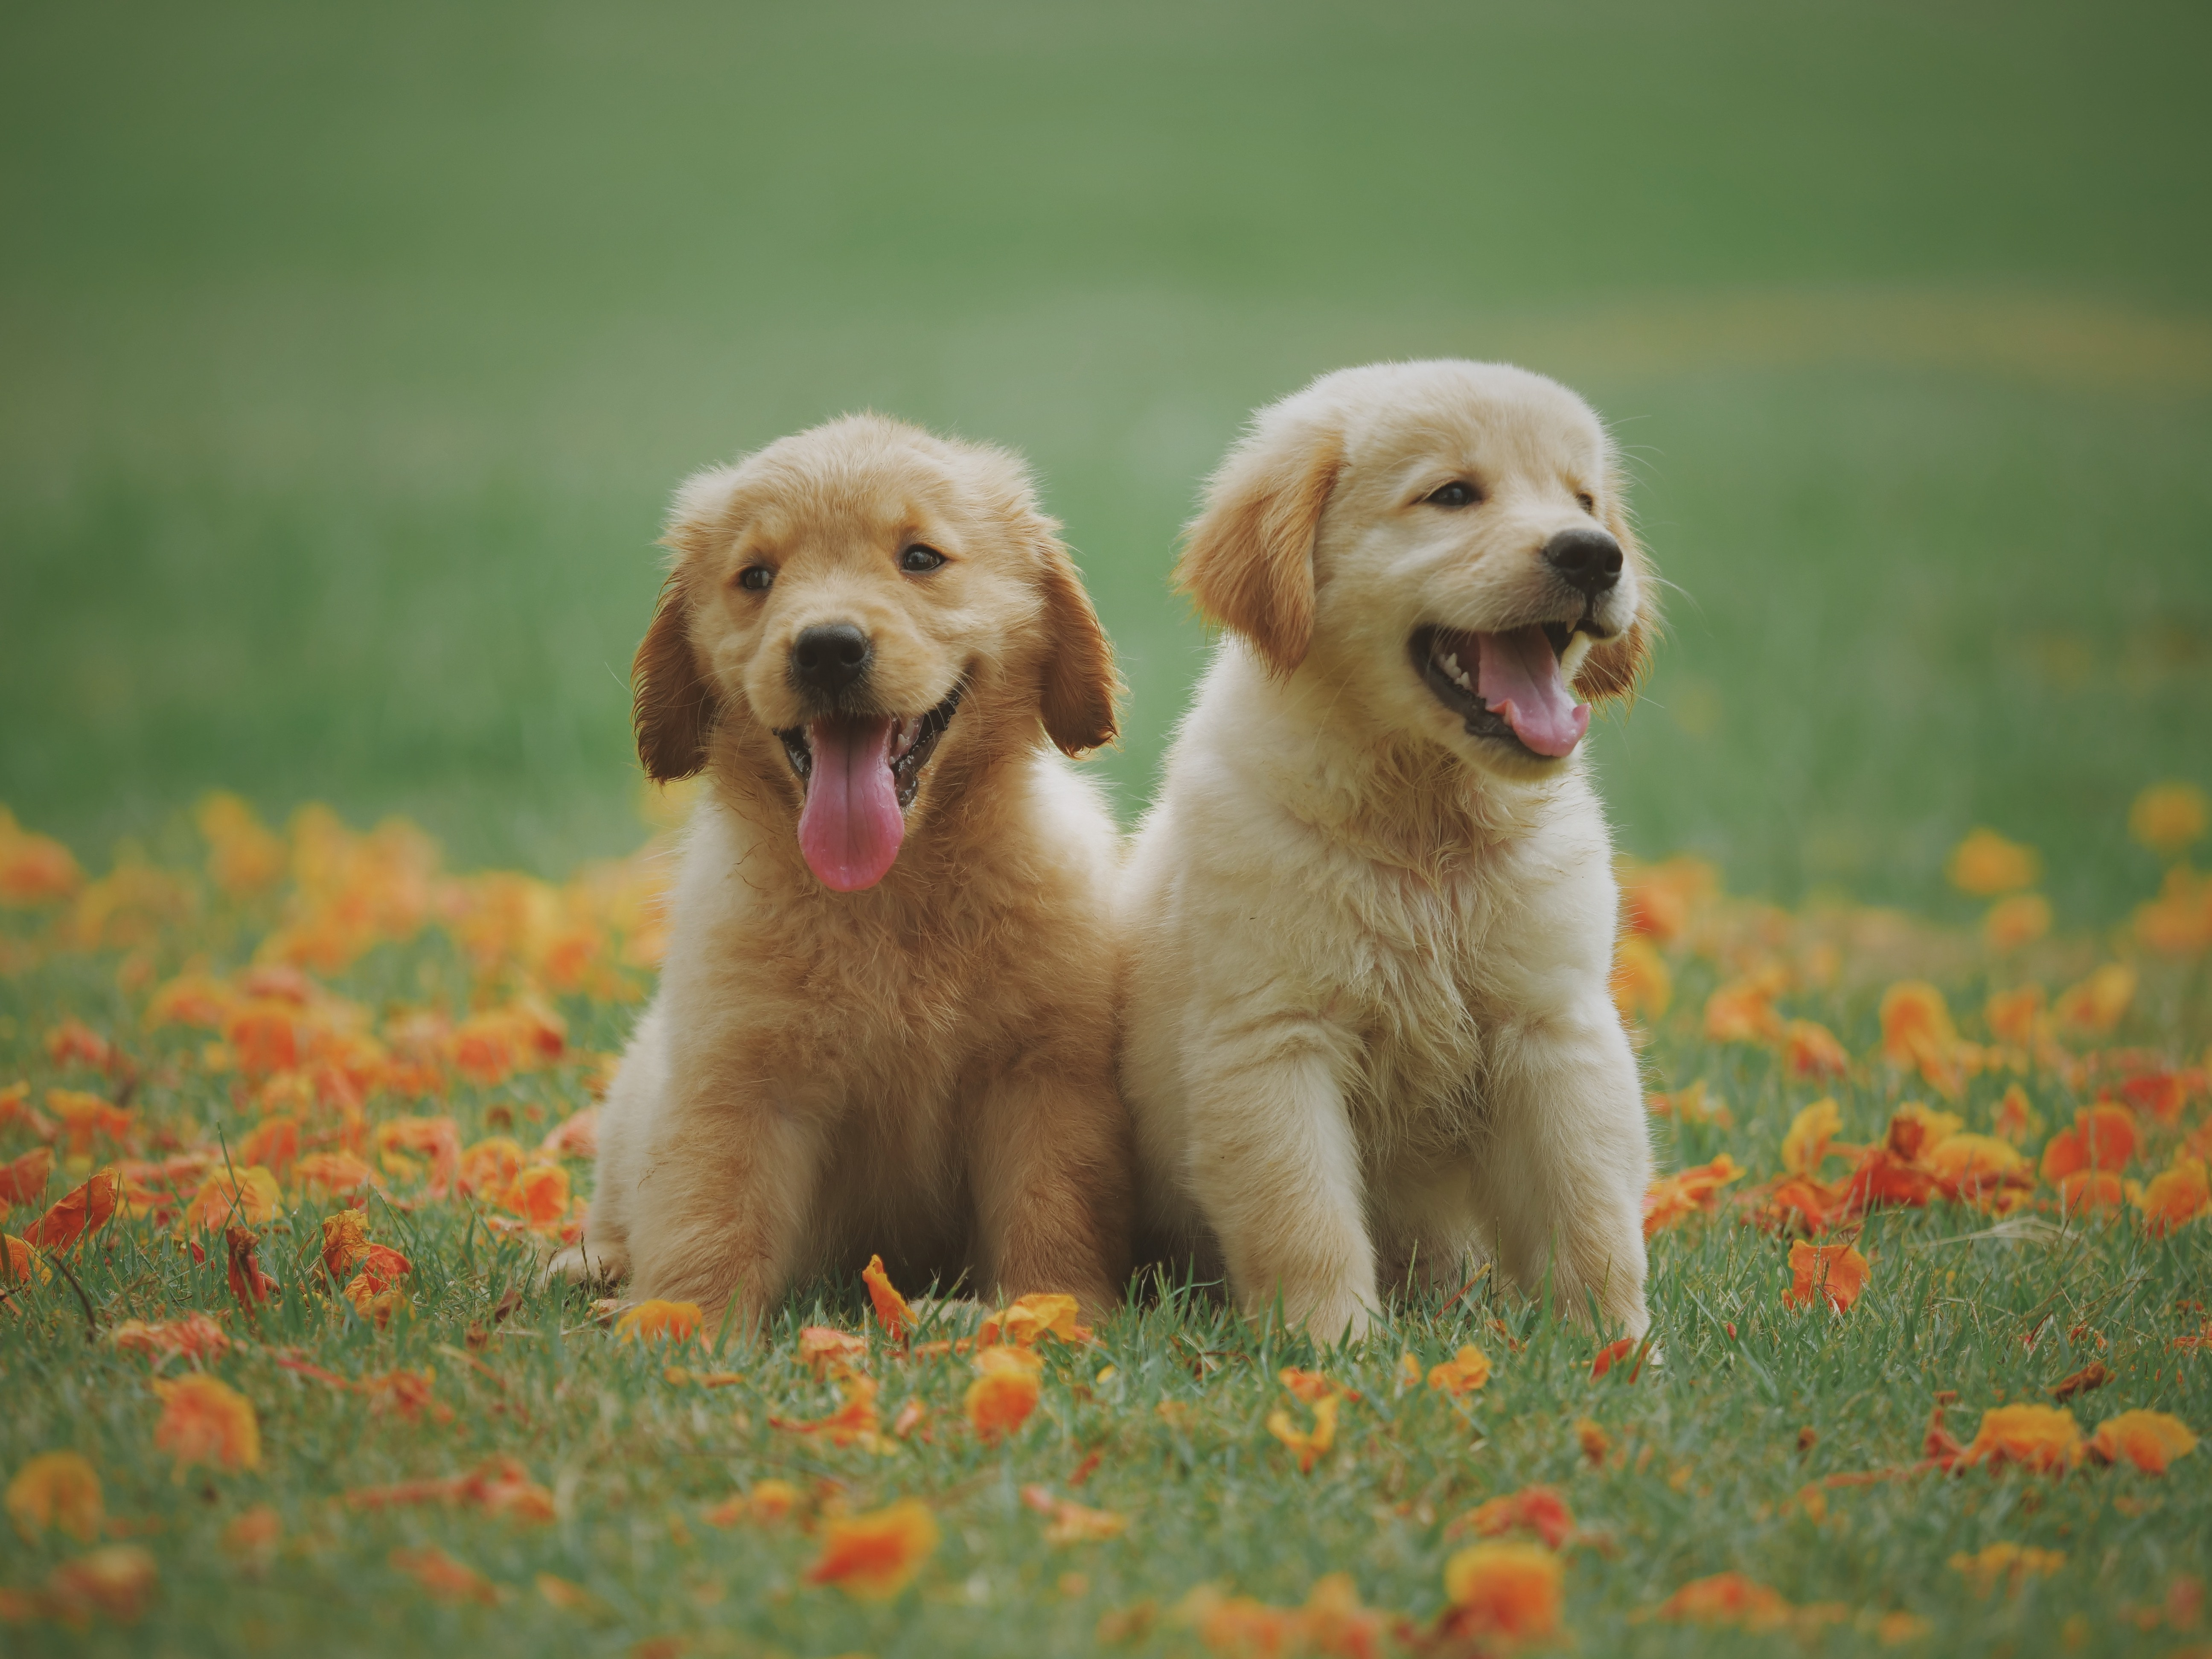 two adorable golden retriver puppies in a green field